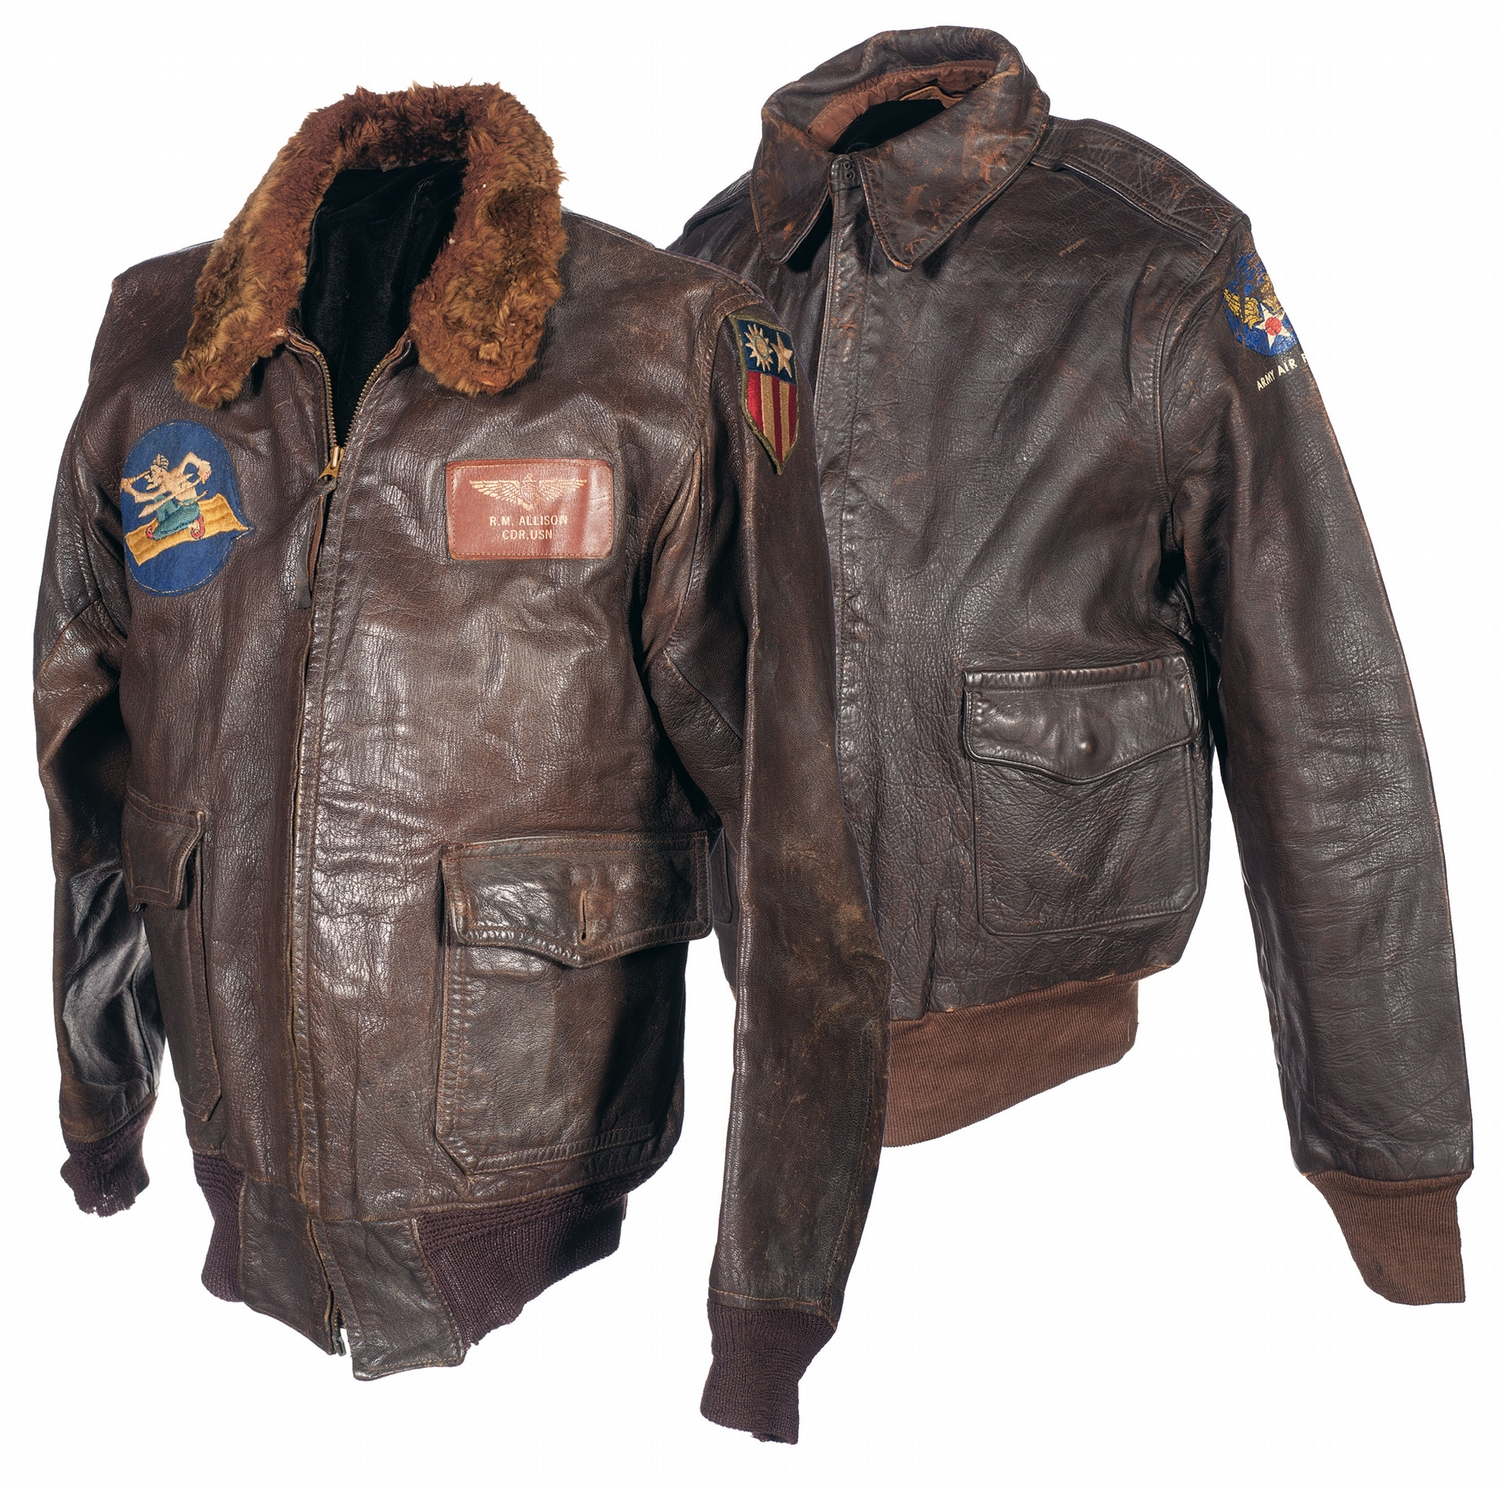 Ww2 Flight Jacket - Coat Nj